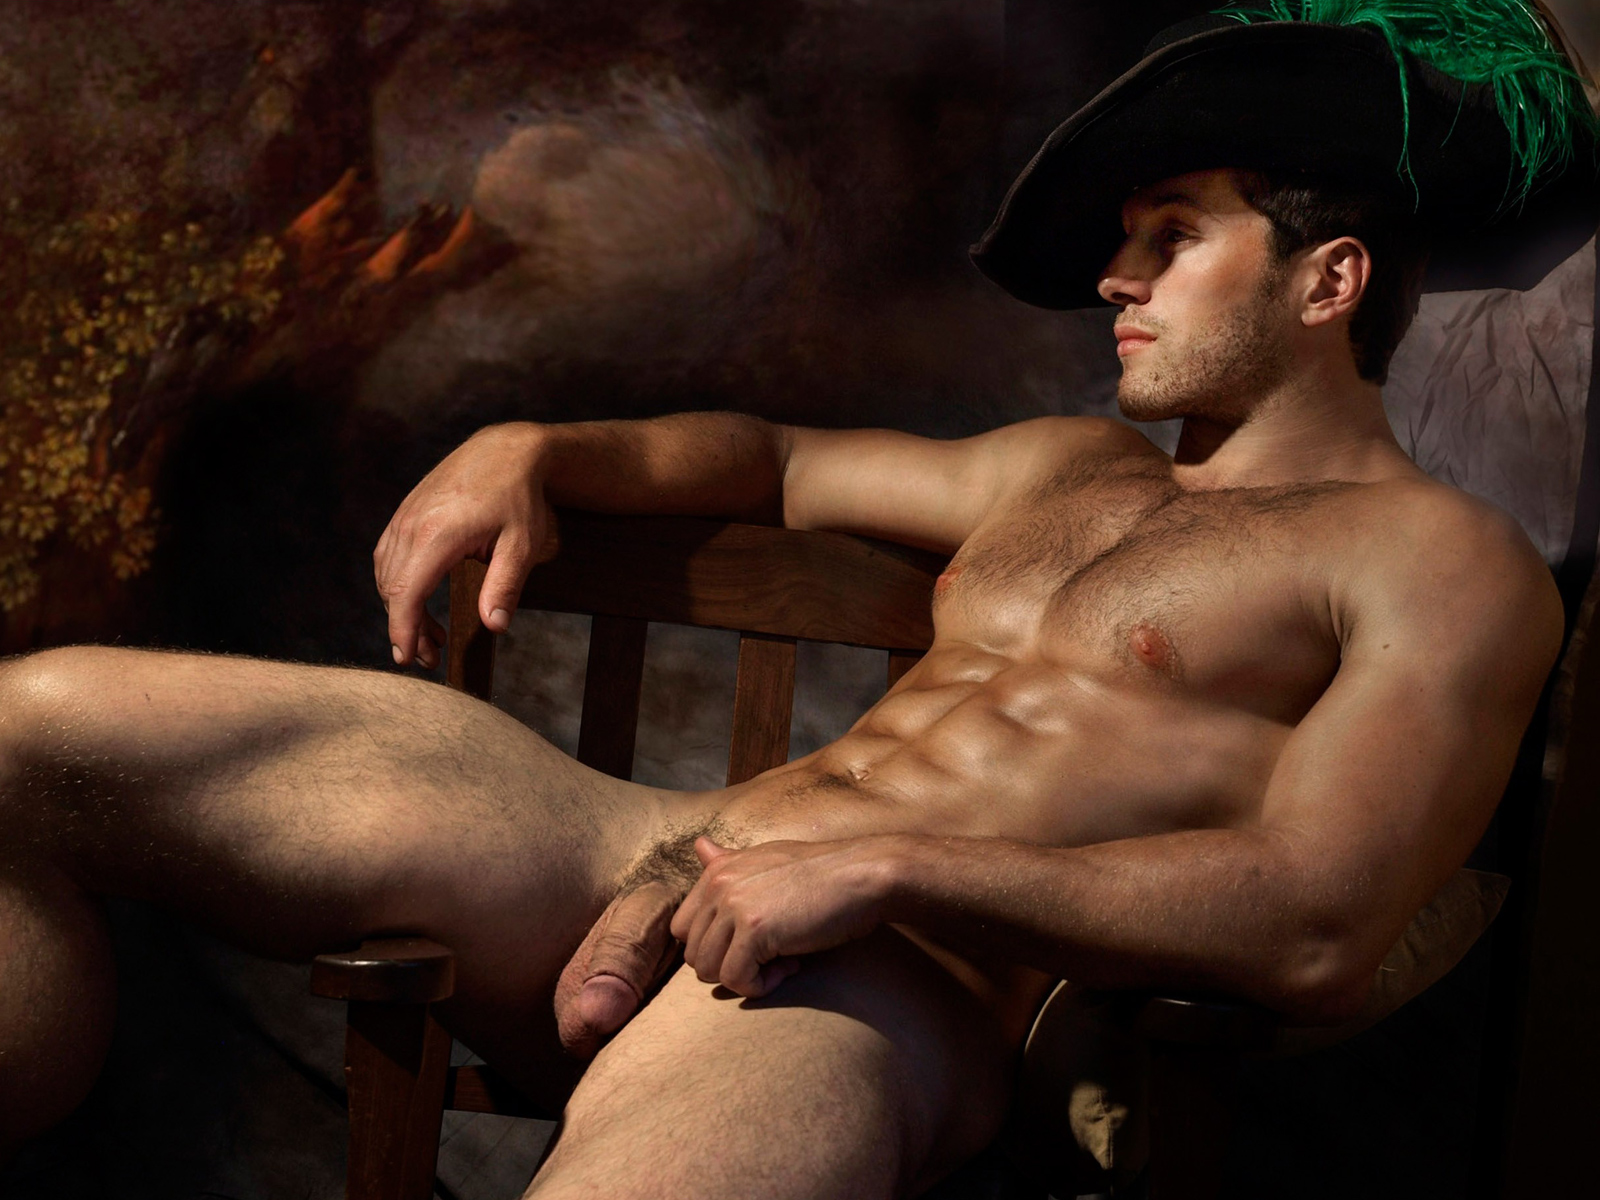 Most popular wallpaper of naked men nsfw movies